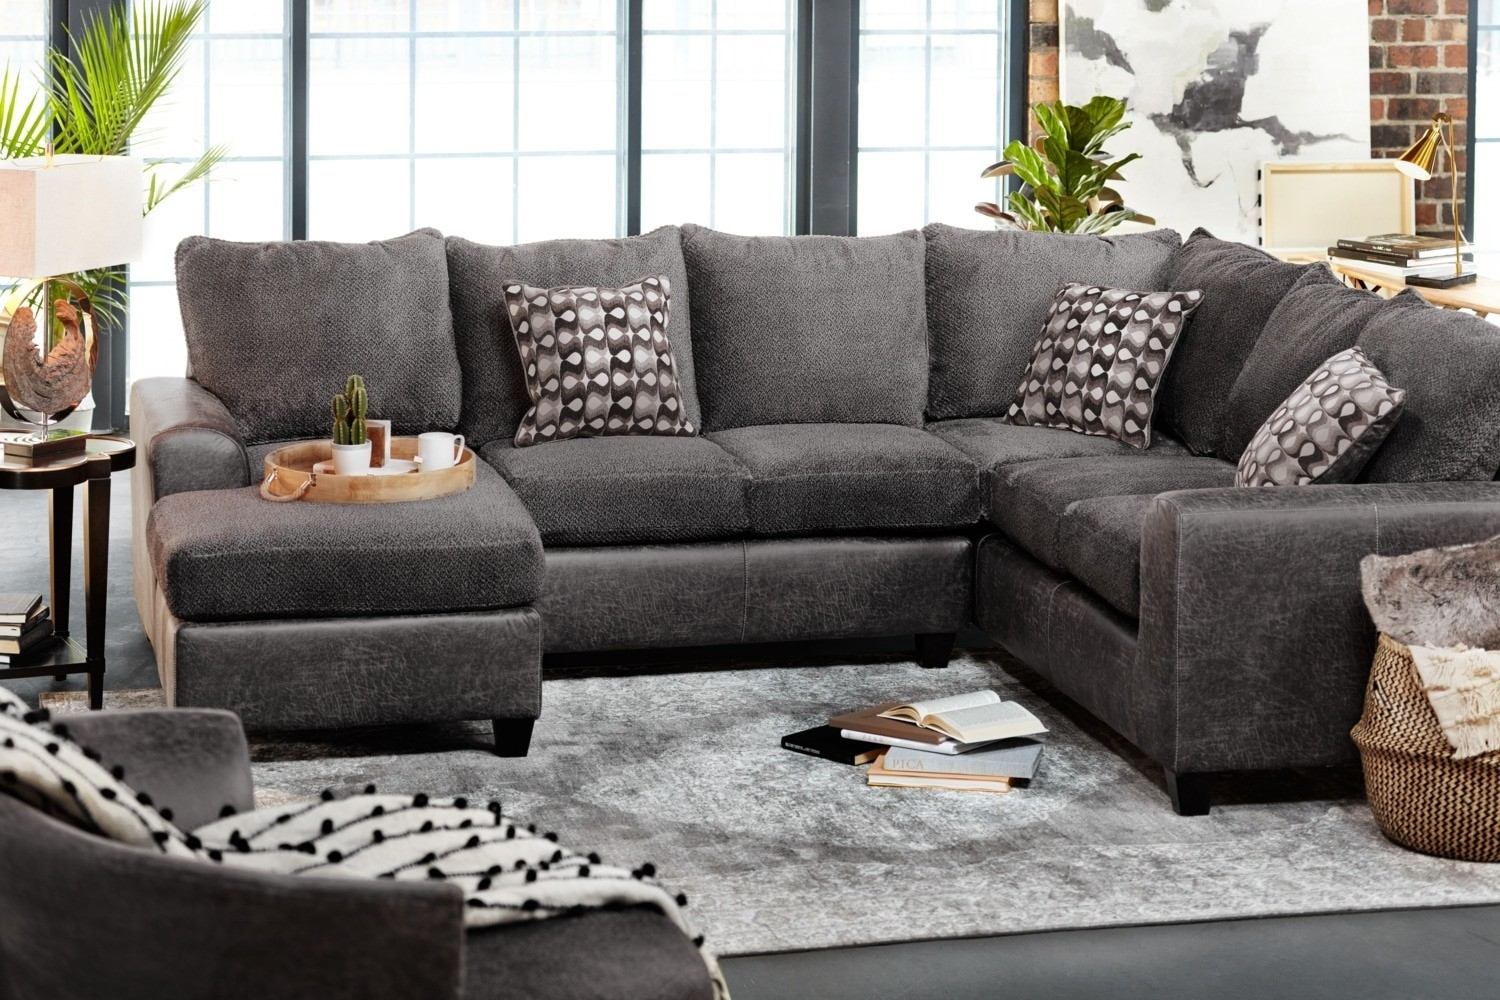 3 Piece Sectional Malbry Point W Laf Chaise Living Spaces 223533 0 With Regard To Malbry Point 3 Piece Sectionals With Laf Chaise (View 2 of 25)